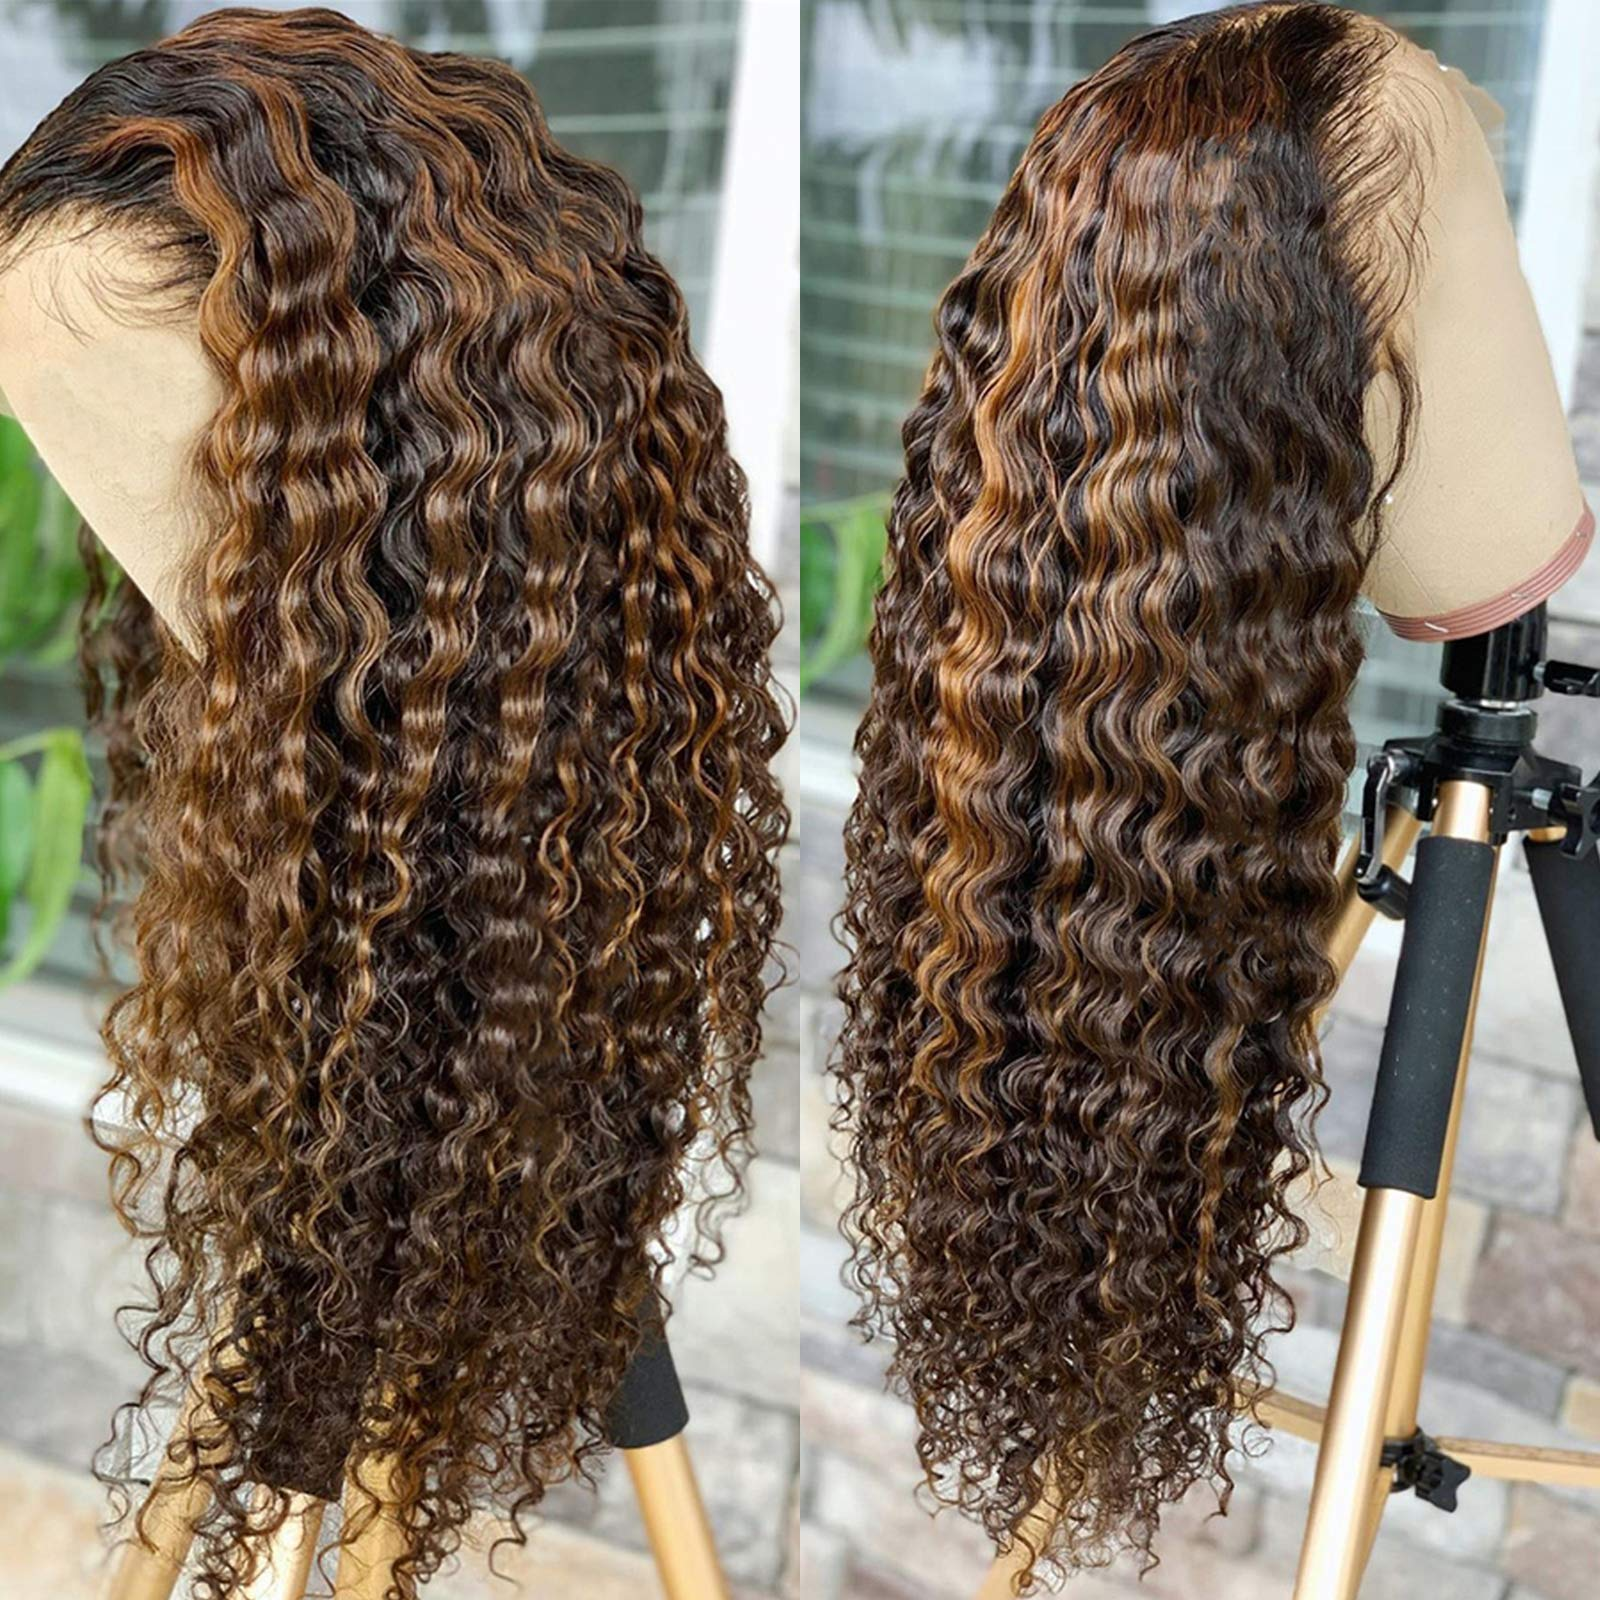 Imeya Ombre Highlight Wigs 13x6 HD Lace Front Wigs Human Hair Deep Curly Wigs Dark Brown To Blonde Brazilian Remy Hair Wigs Pre Plucked With Baby Hair 150 Density, 20 Inches